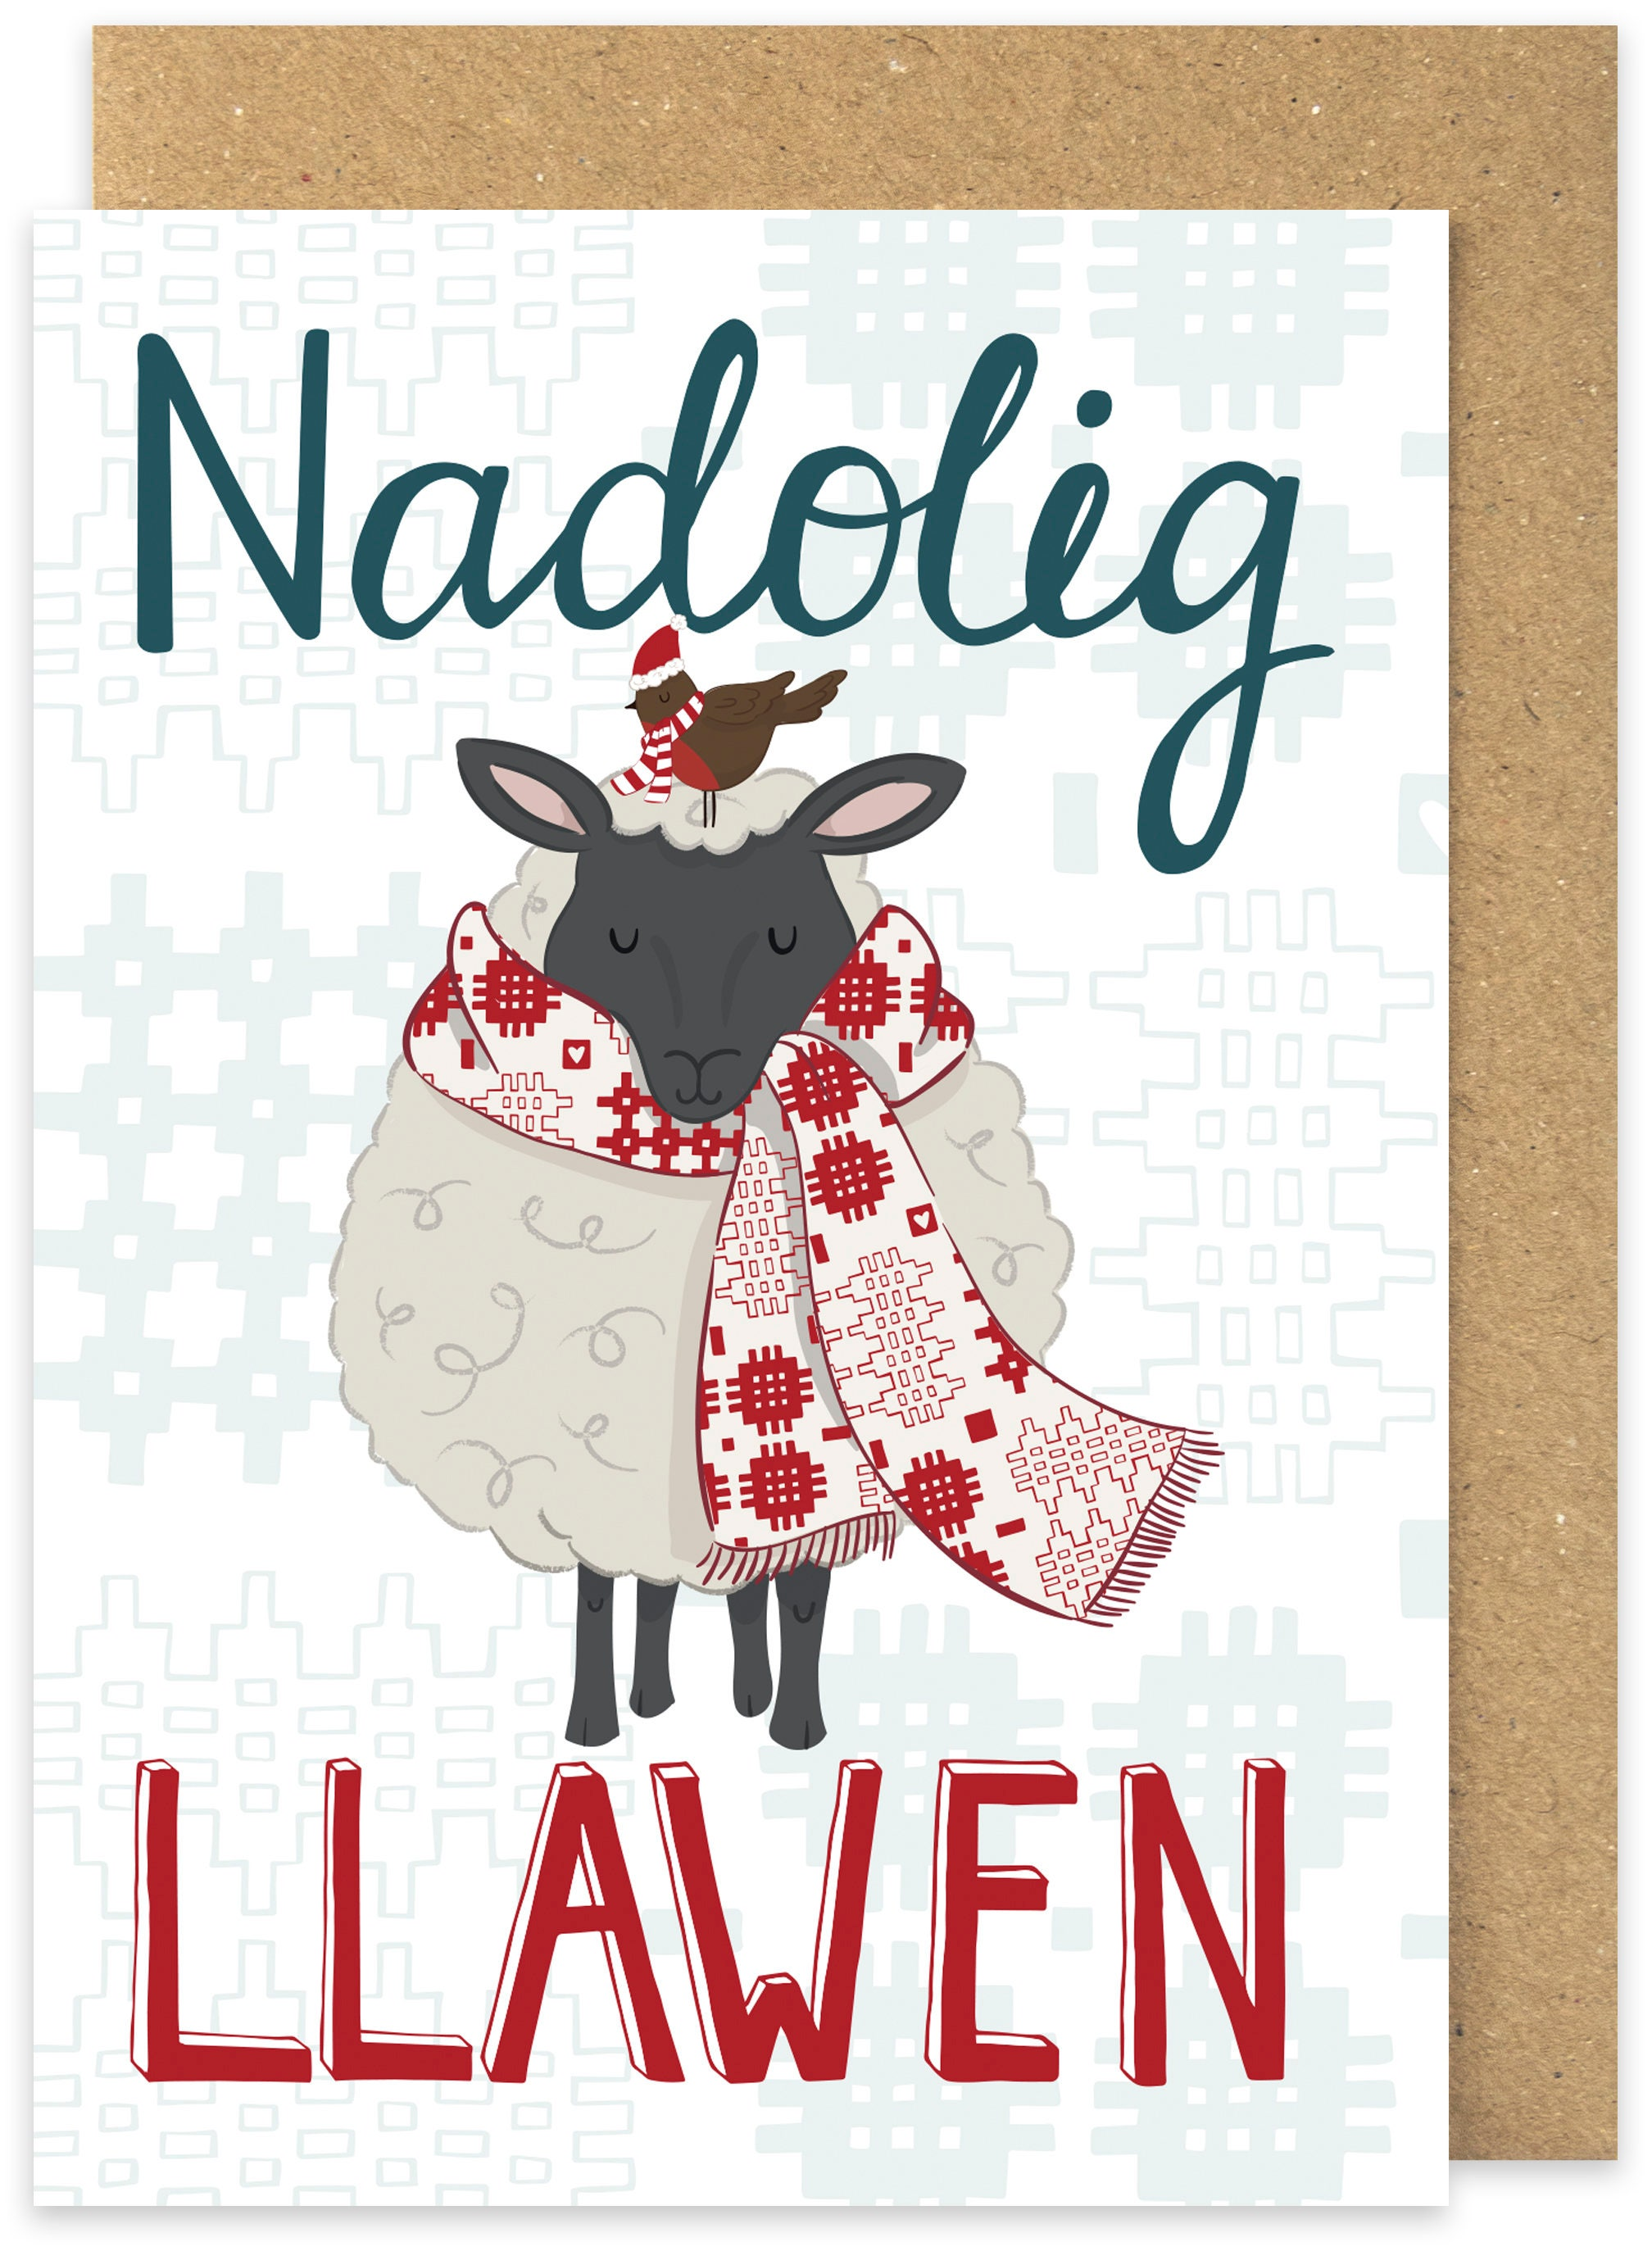 Sale nadolig llawen greetings card welsh typography card welsh sale nadolig llawen greetings card welsh typography card welsh wales cymru kristyandbryce Image collections